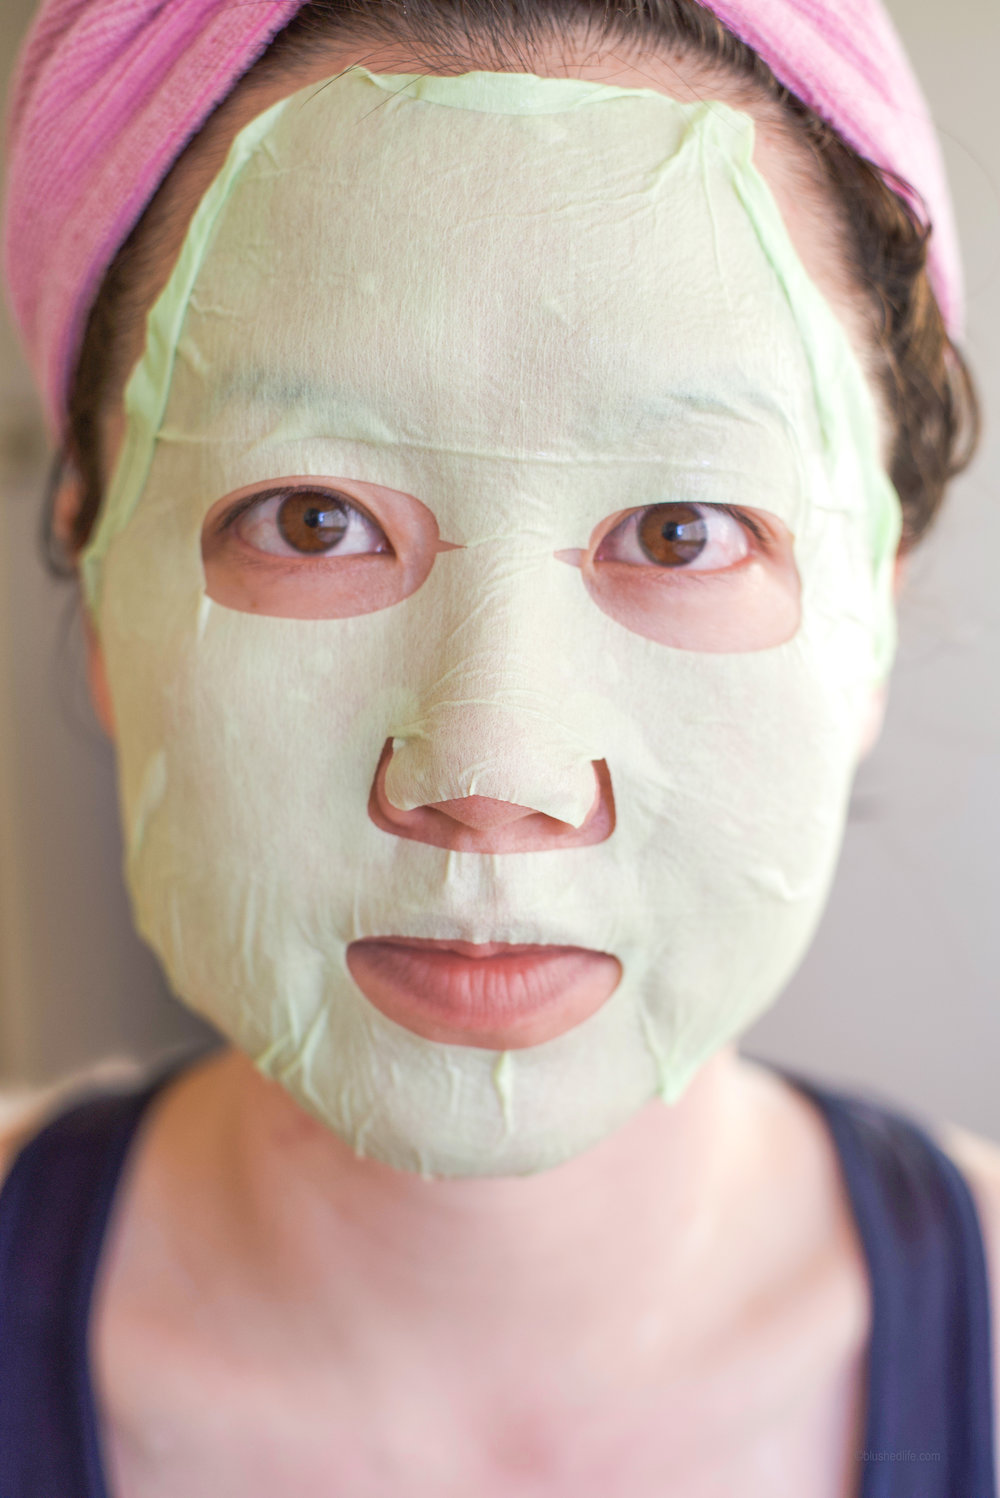 Jayjun_AntiDust_Therapy_Mask_Review_DSC_4989-2.jpg